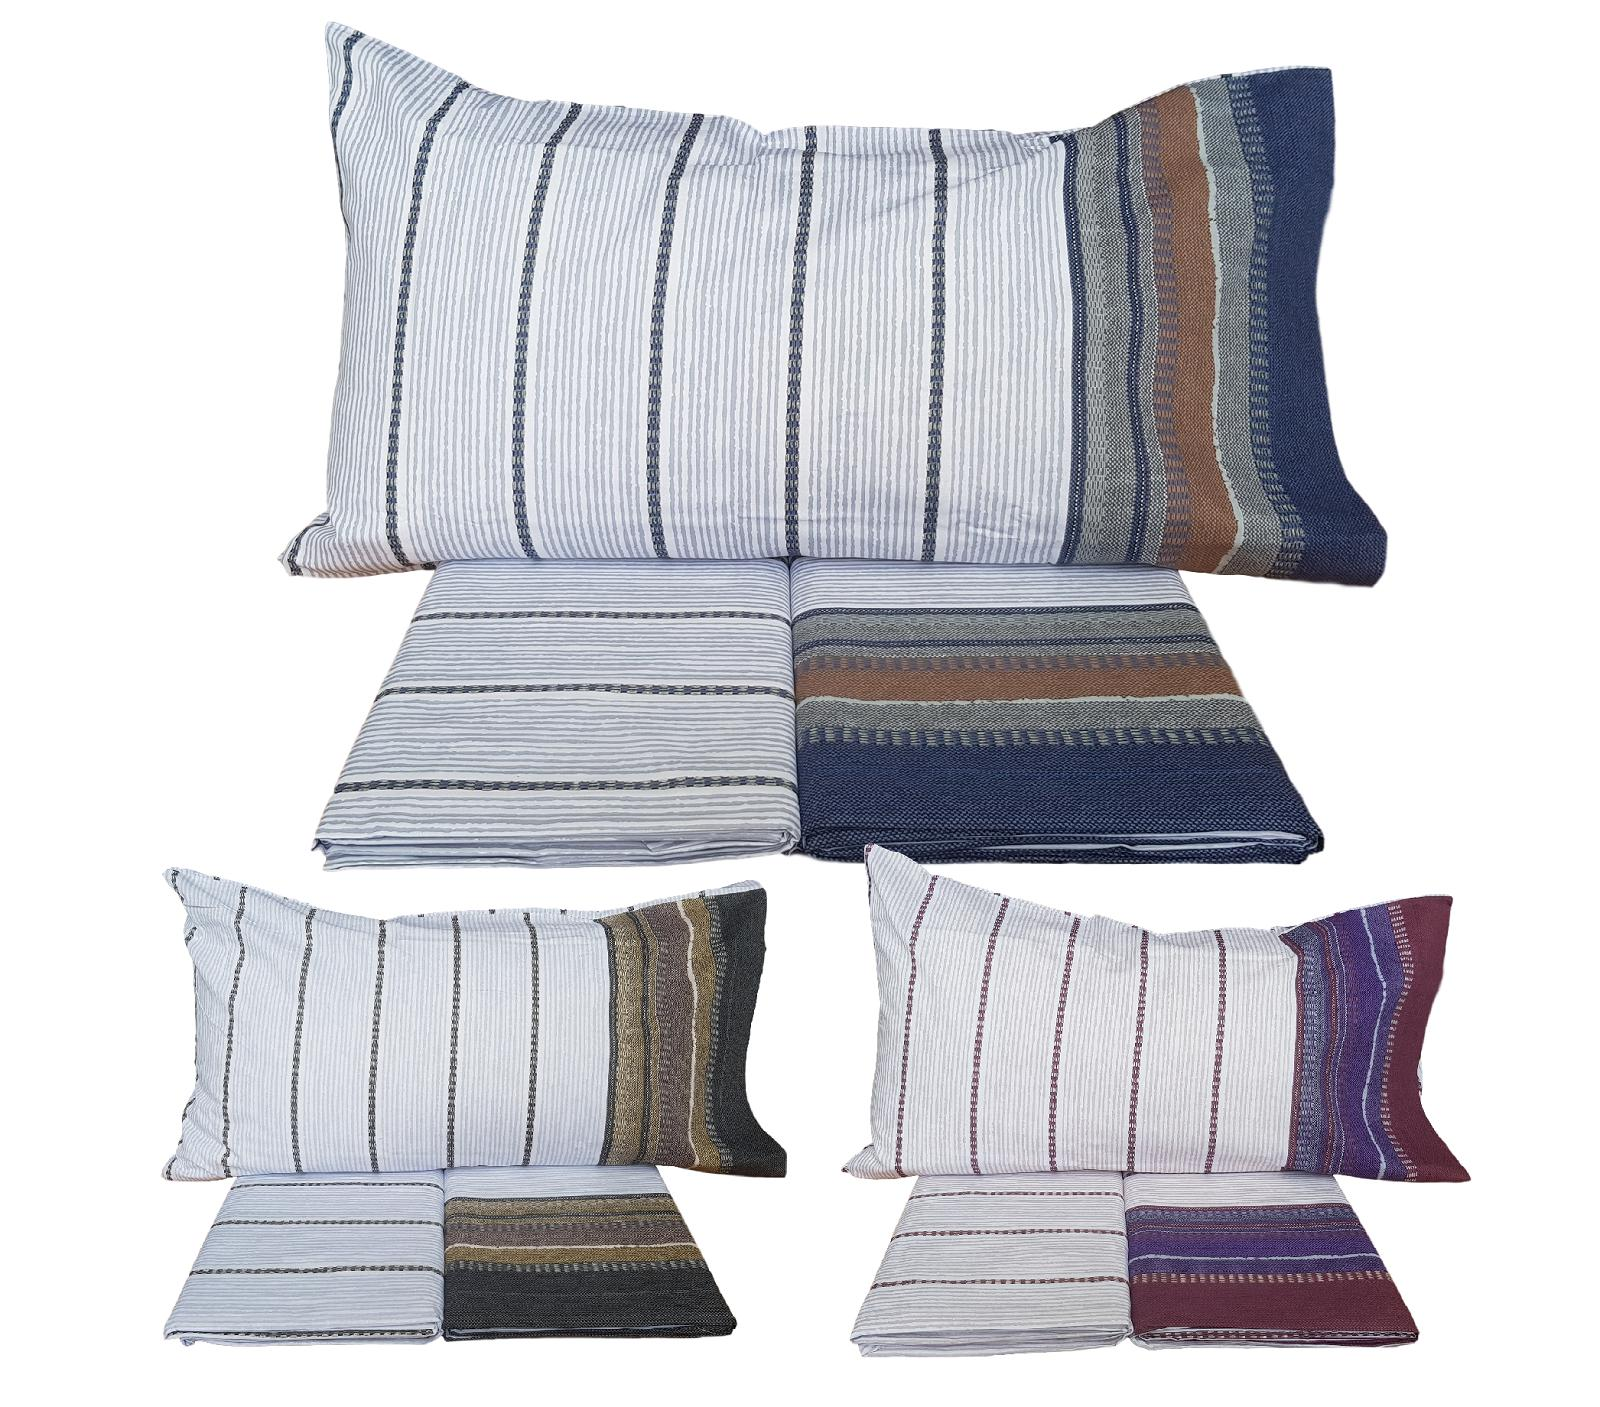 MAE' BANNER. Lenzuola completo set letto 100% Cotone 150/180 fili Made in Italy